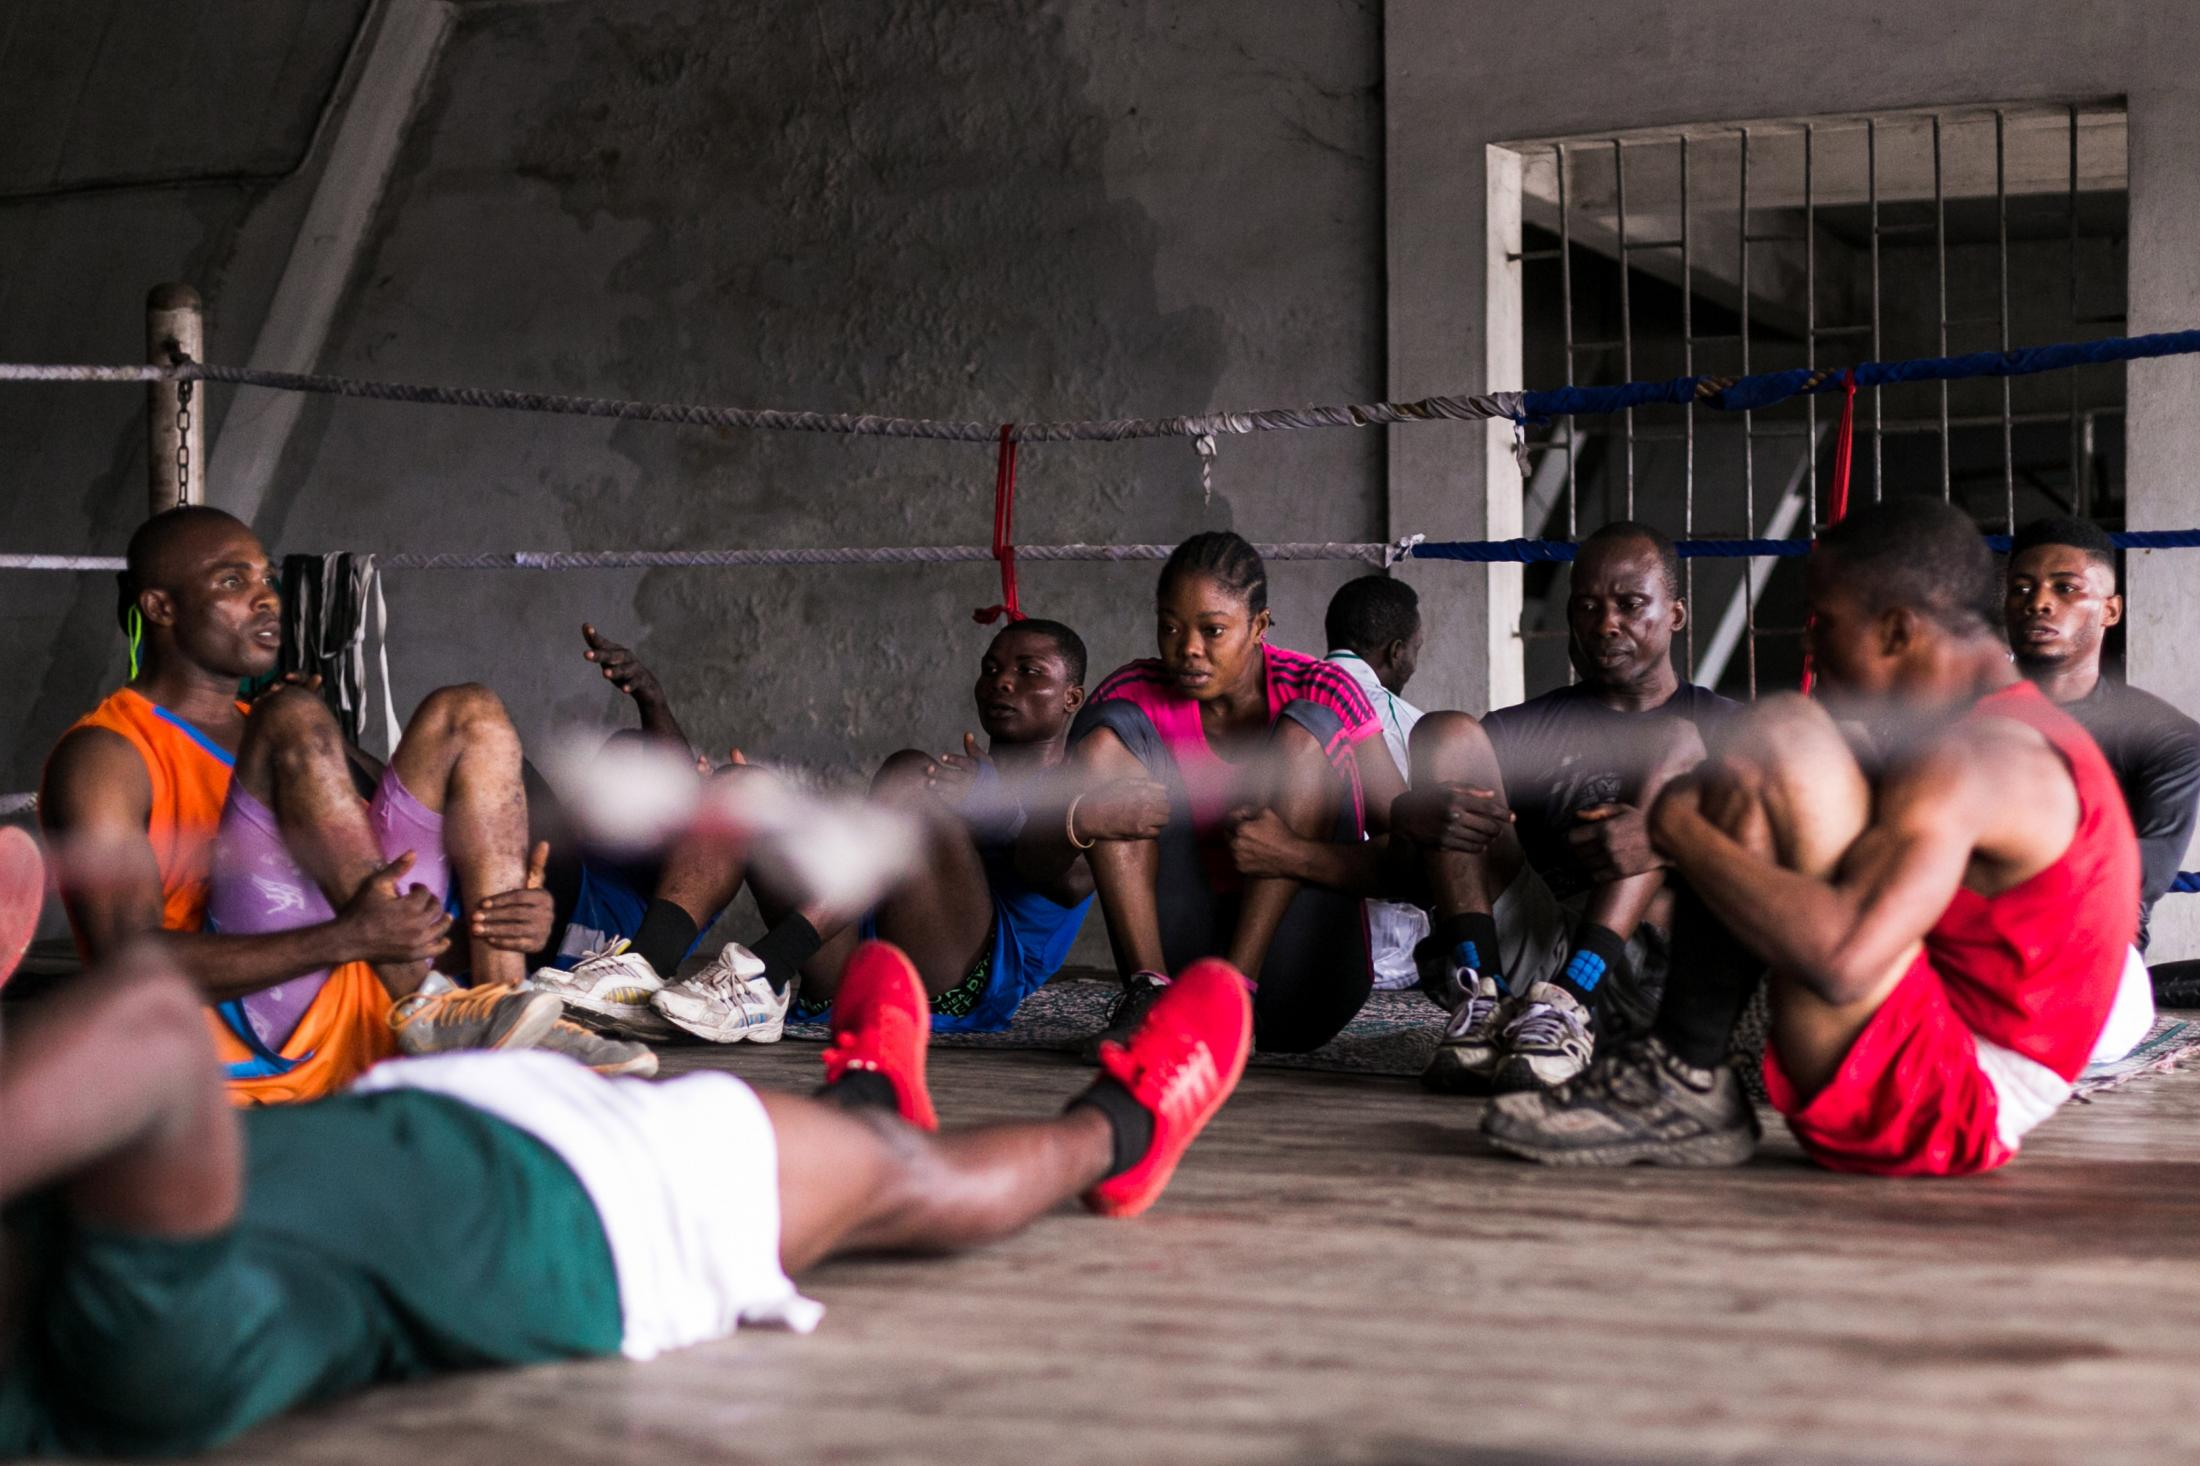 11 July 2019: Some boxers training in the National Stadium Lagos, Nigeria